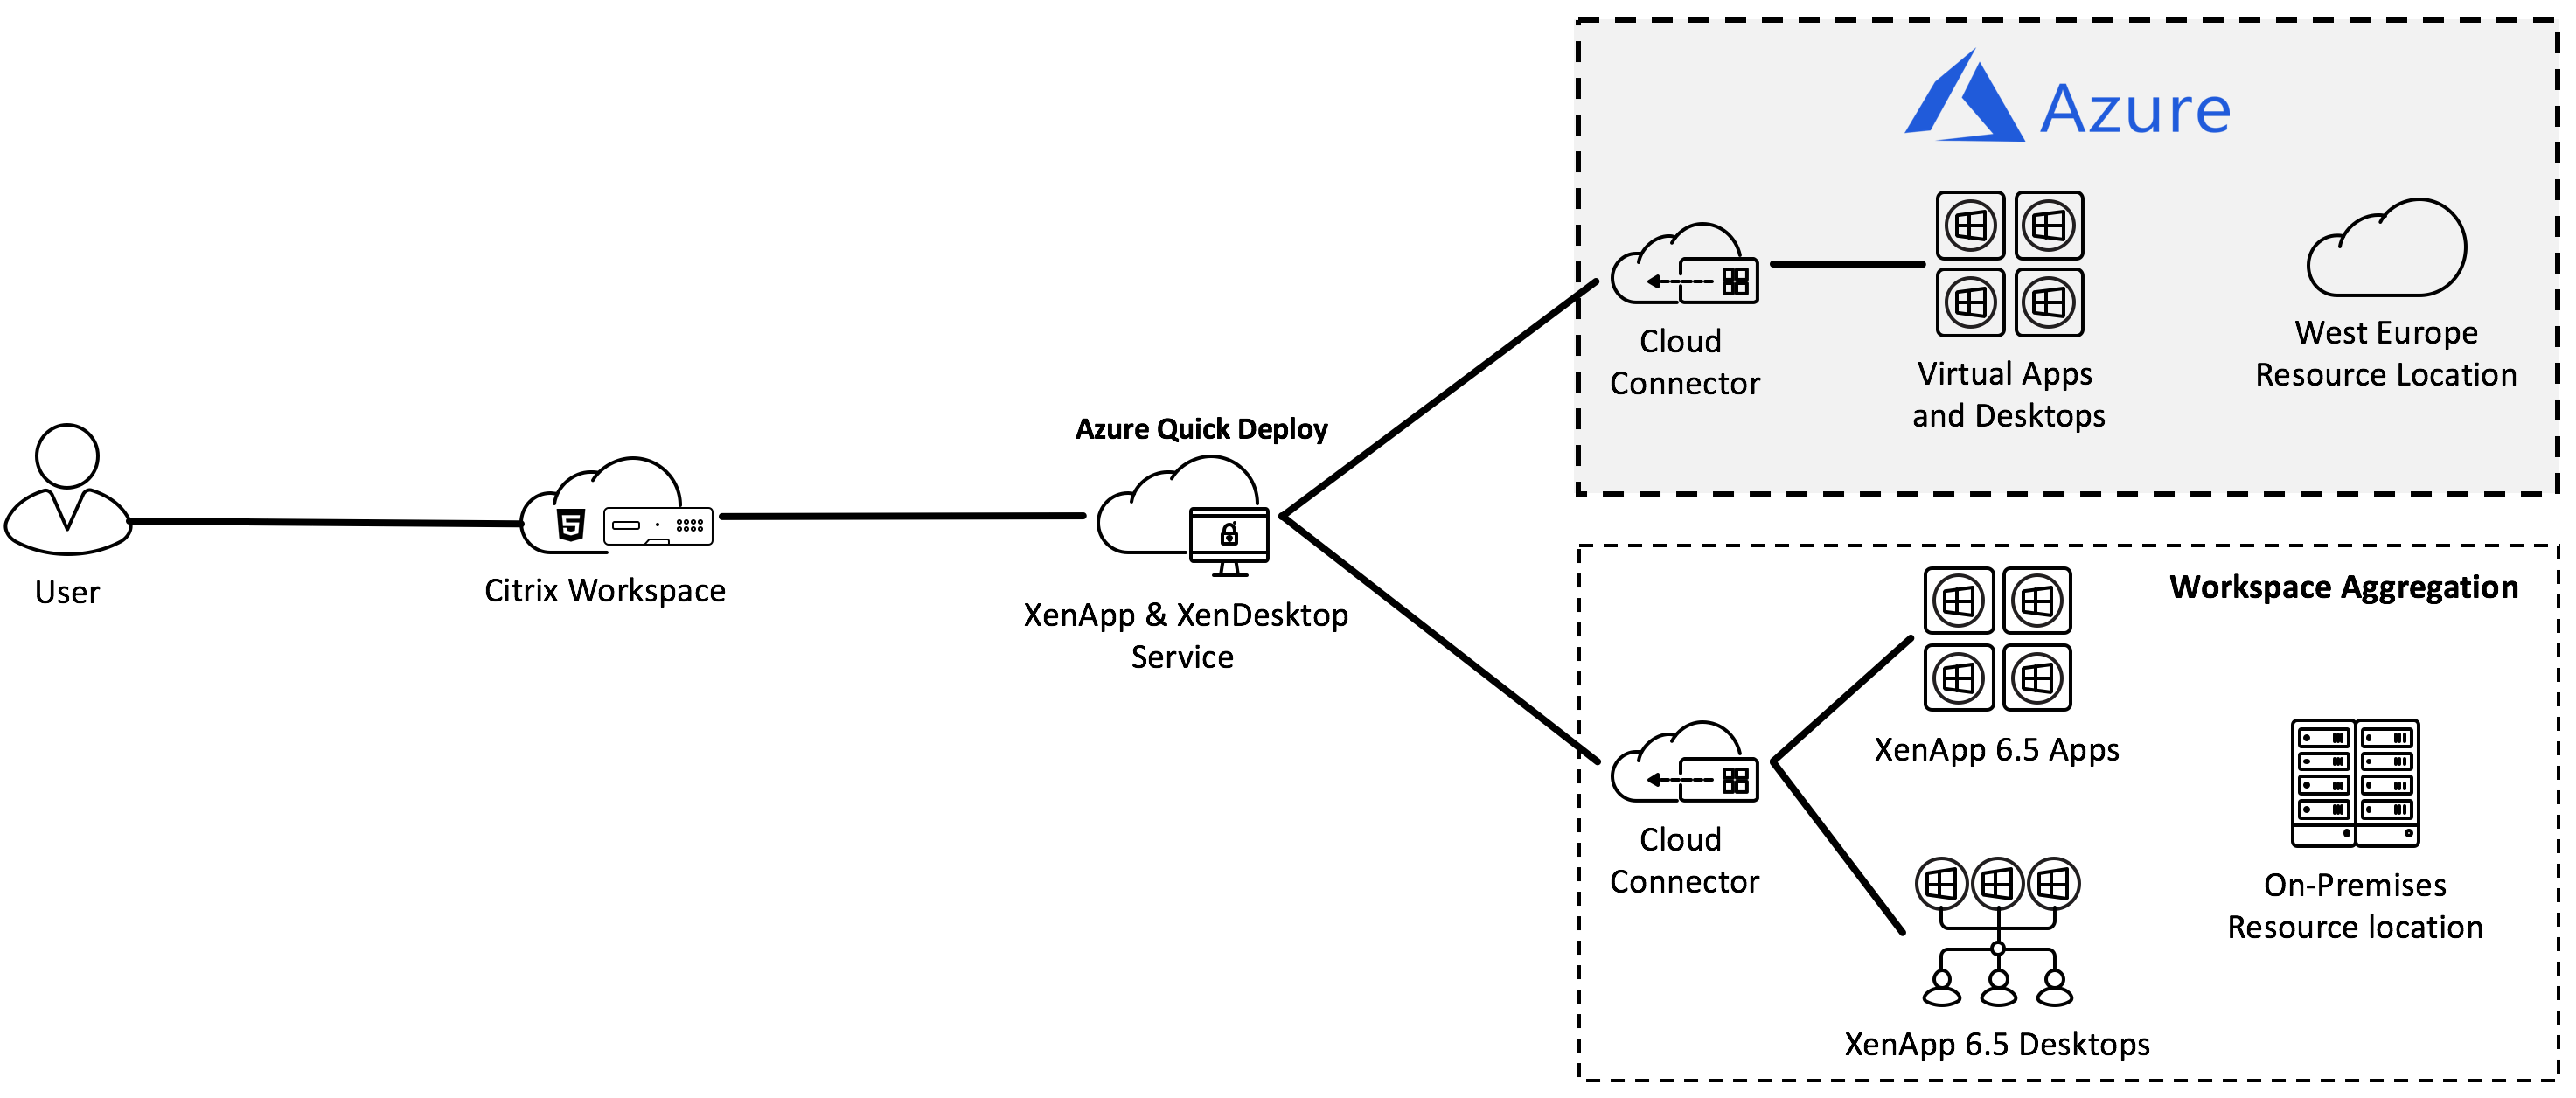 Configure Azure Quick Deploy and Workspace Site Aggregation